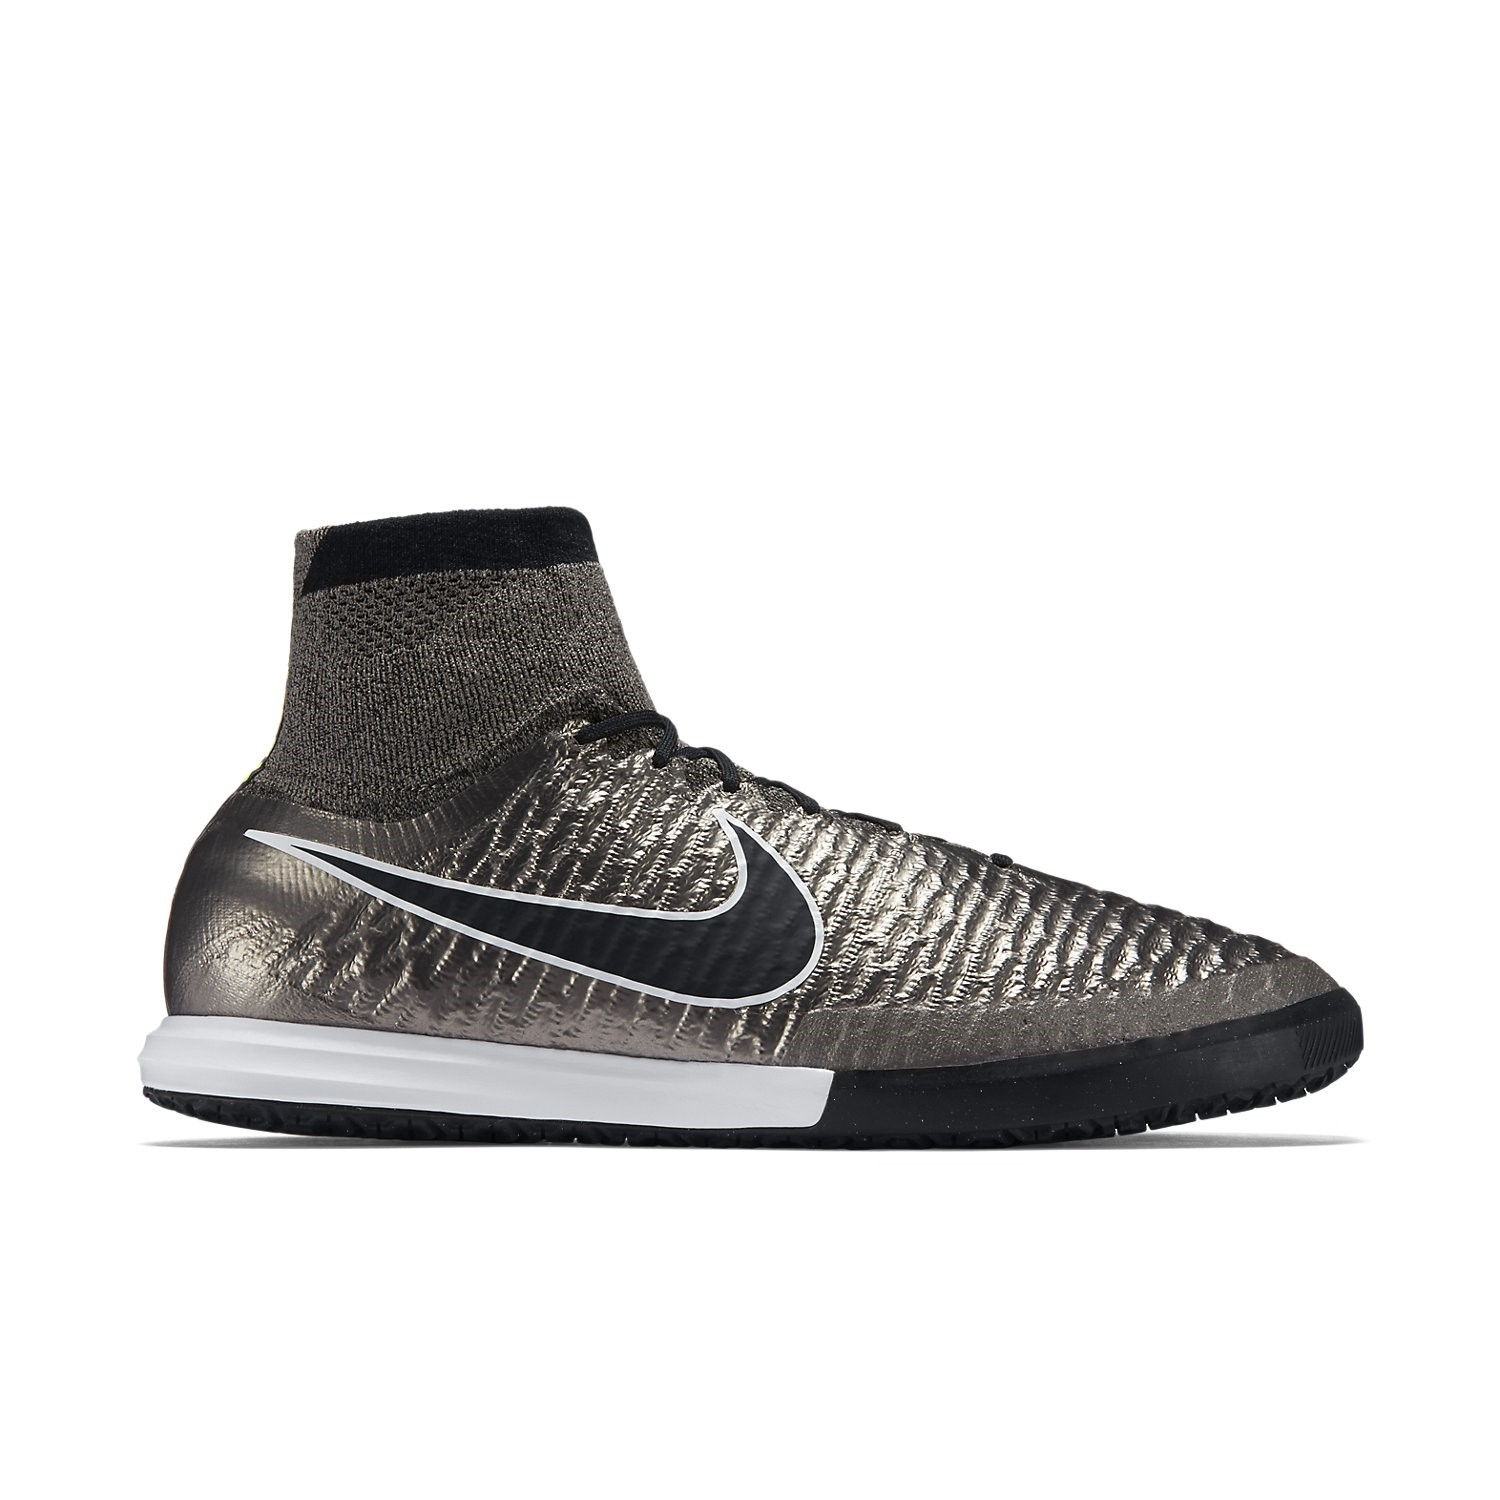 Nike Proximo Indoor Soccer Shoes